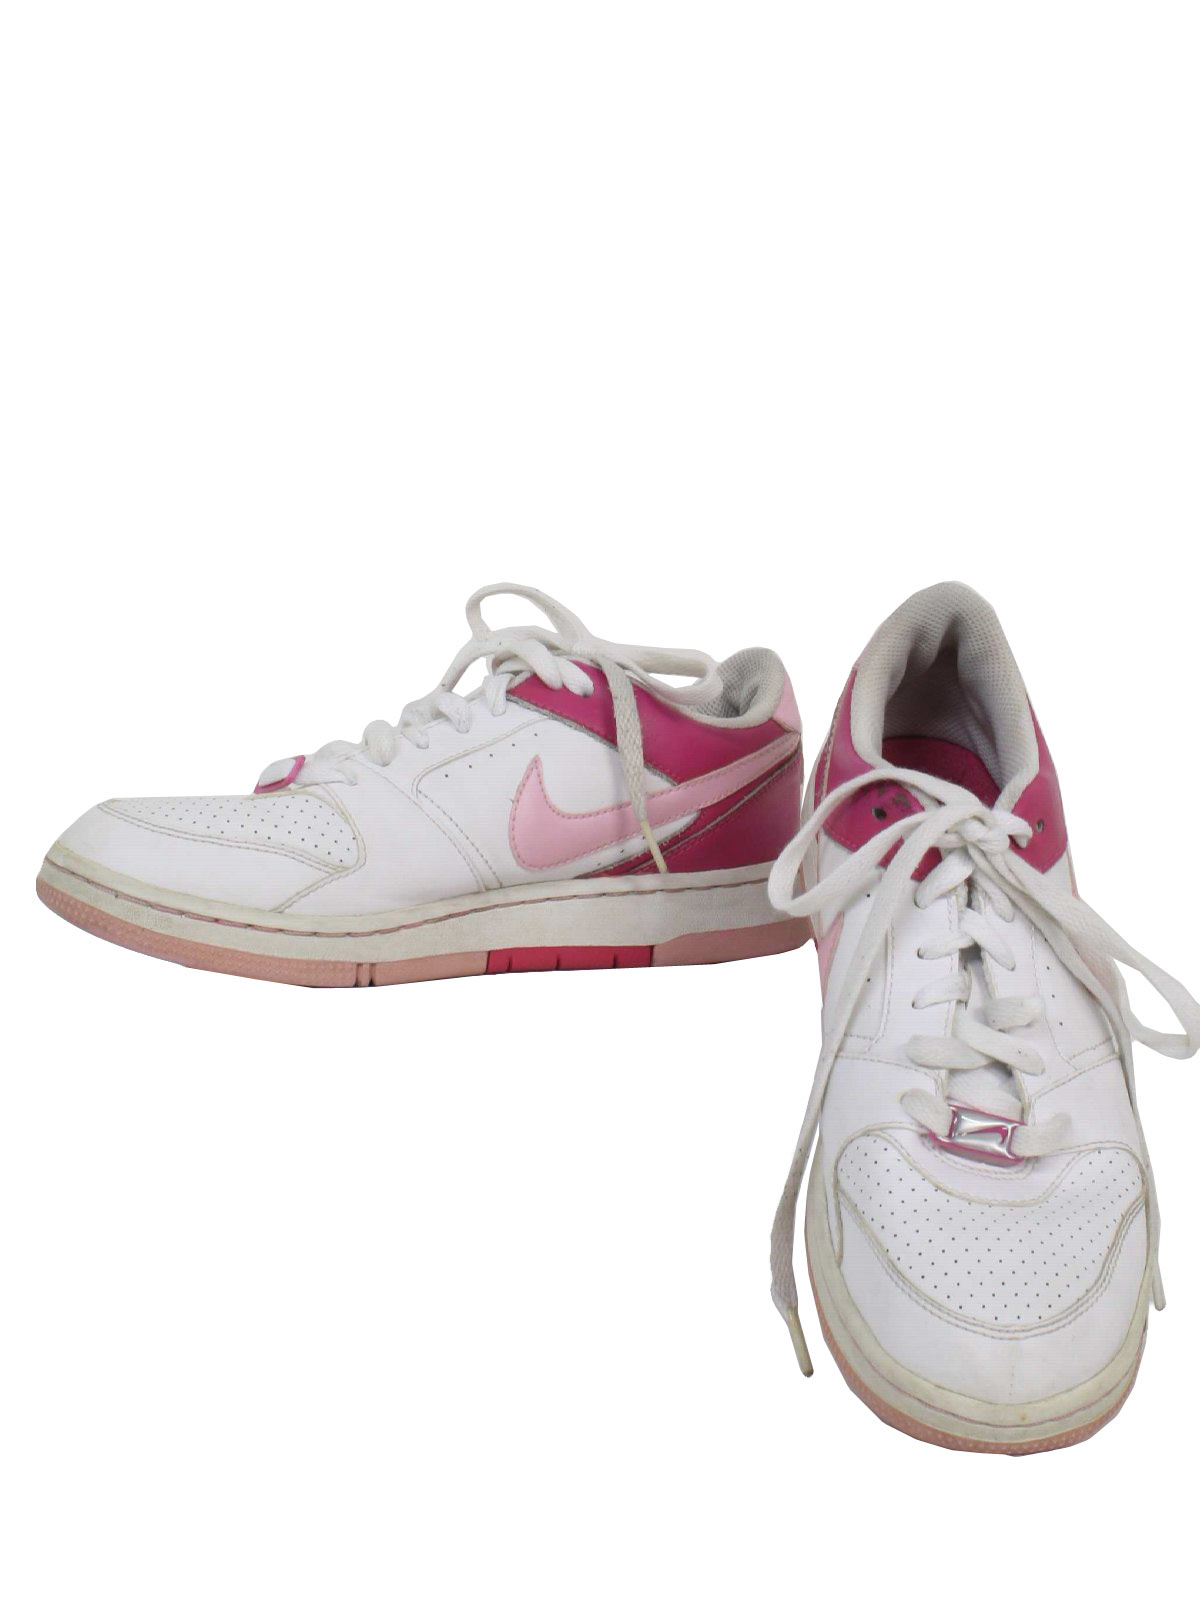 1990s Vintage Nike Shoes 90s Nike Womens Off White And